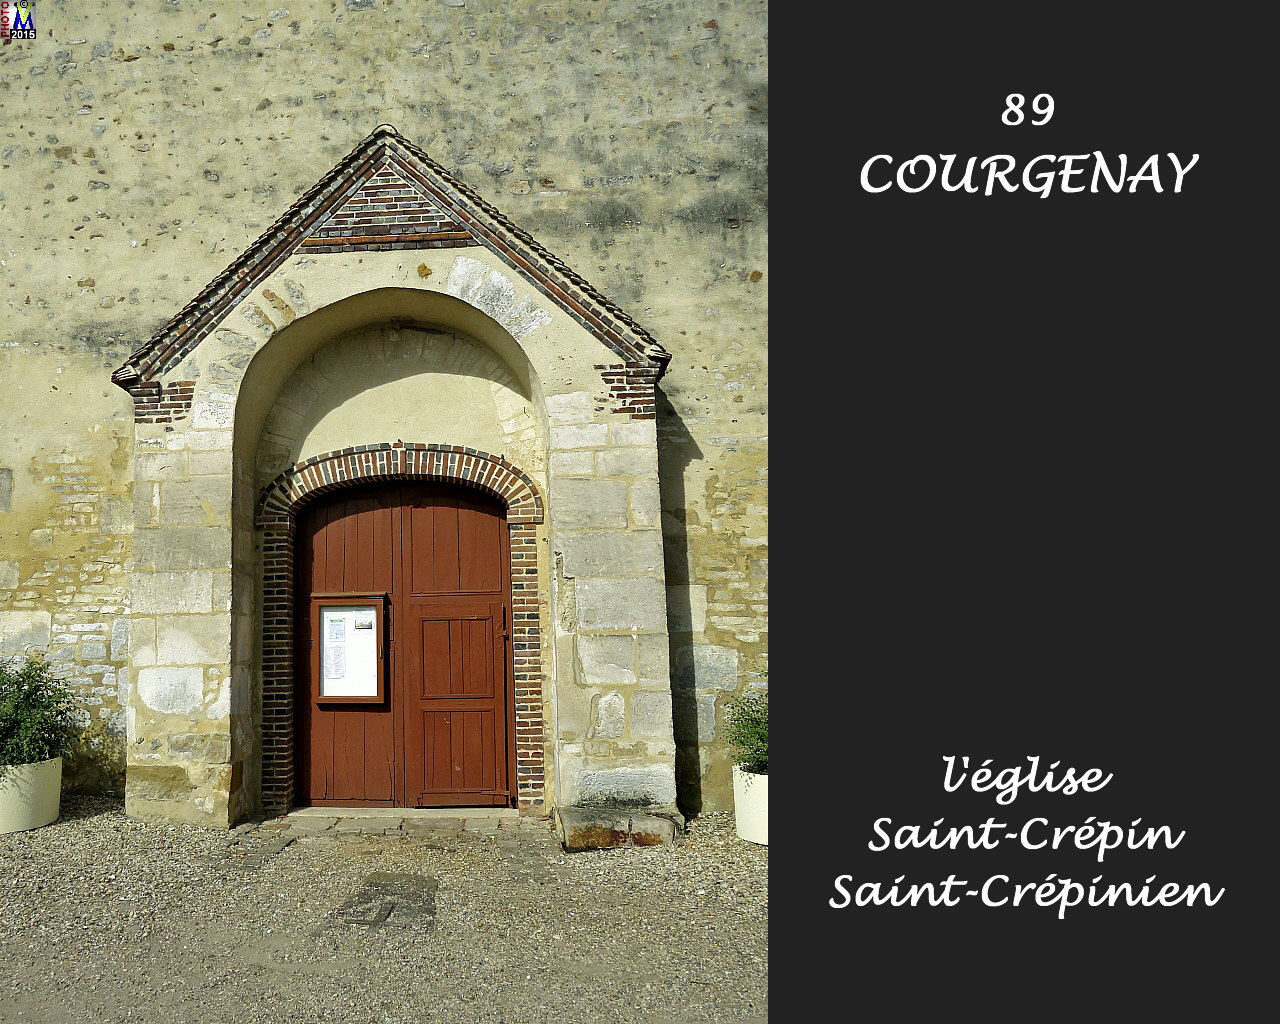 89COURGENAY_eglise_110.jpg